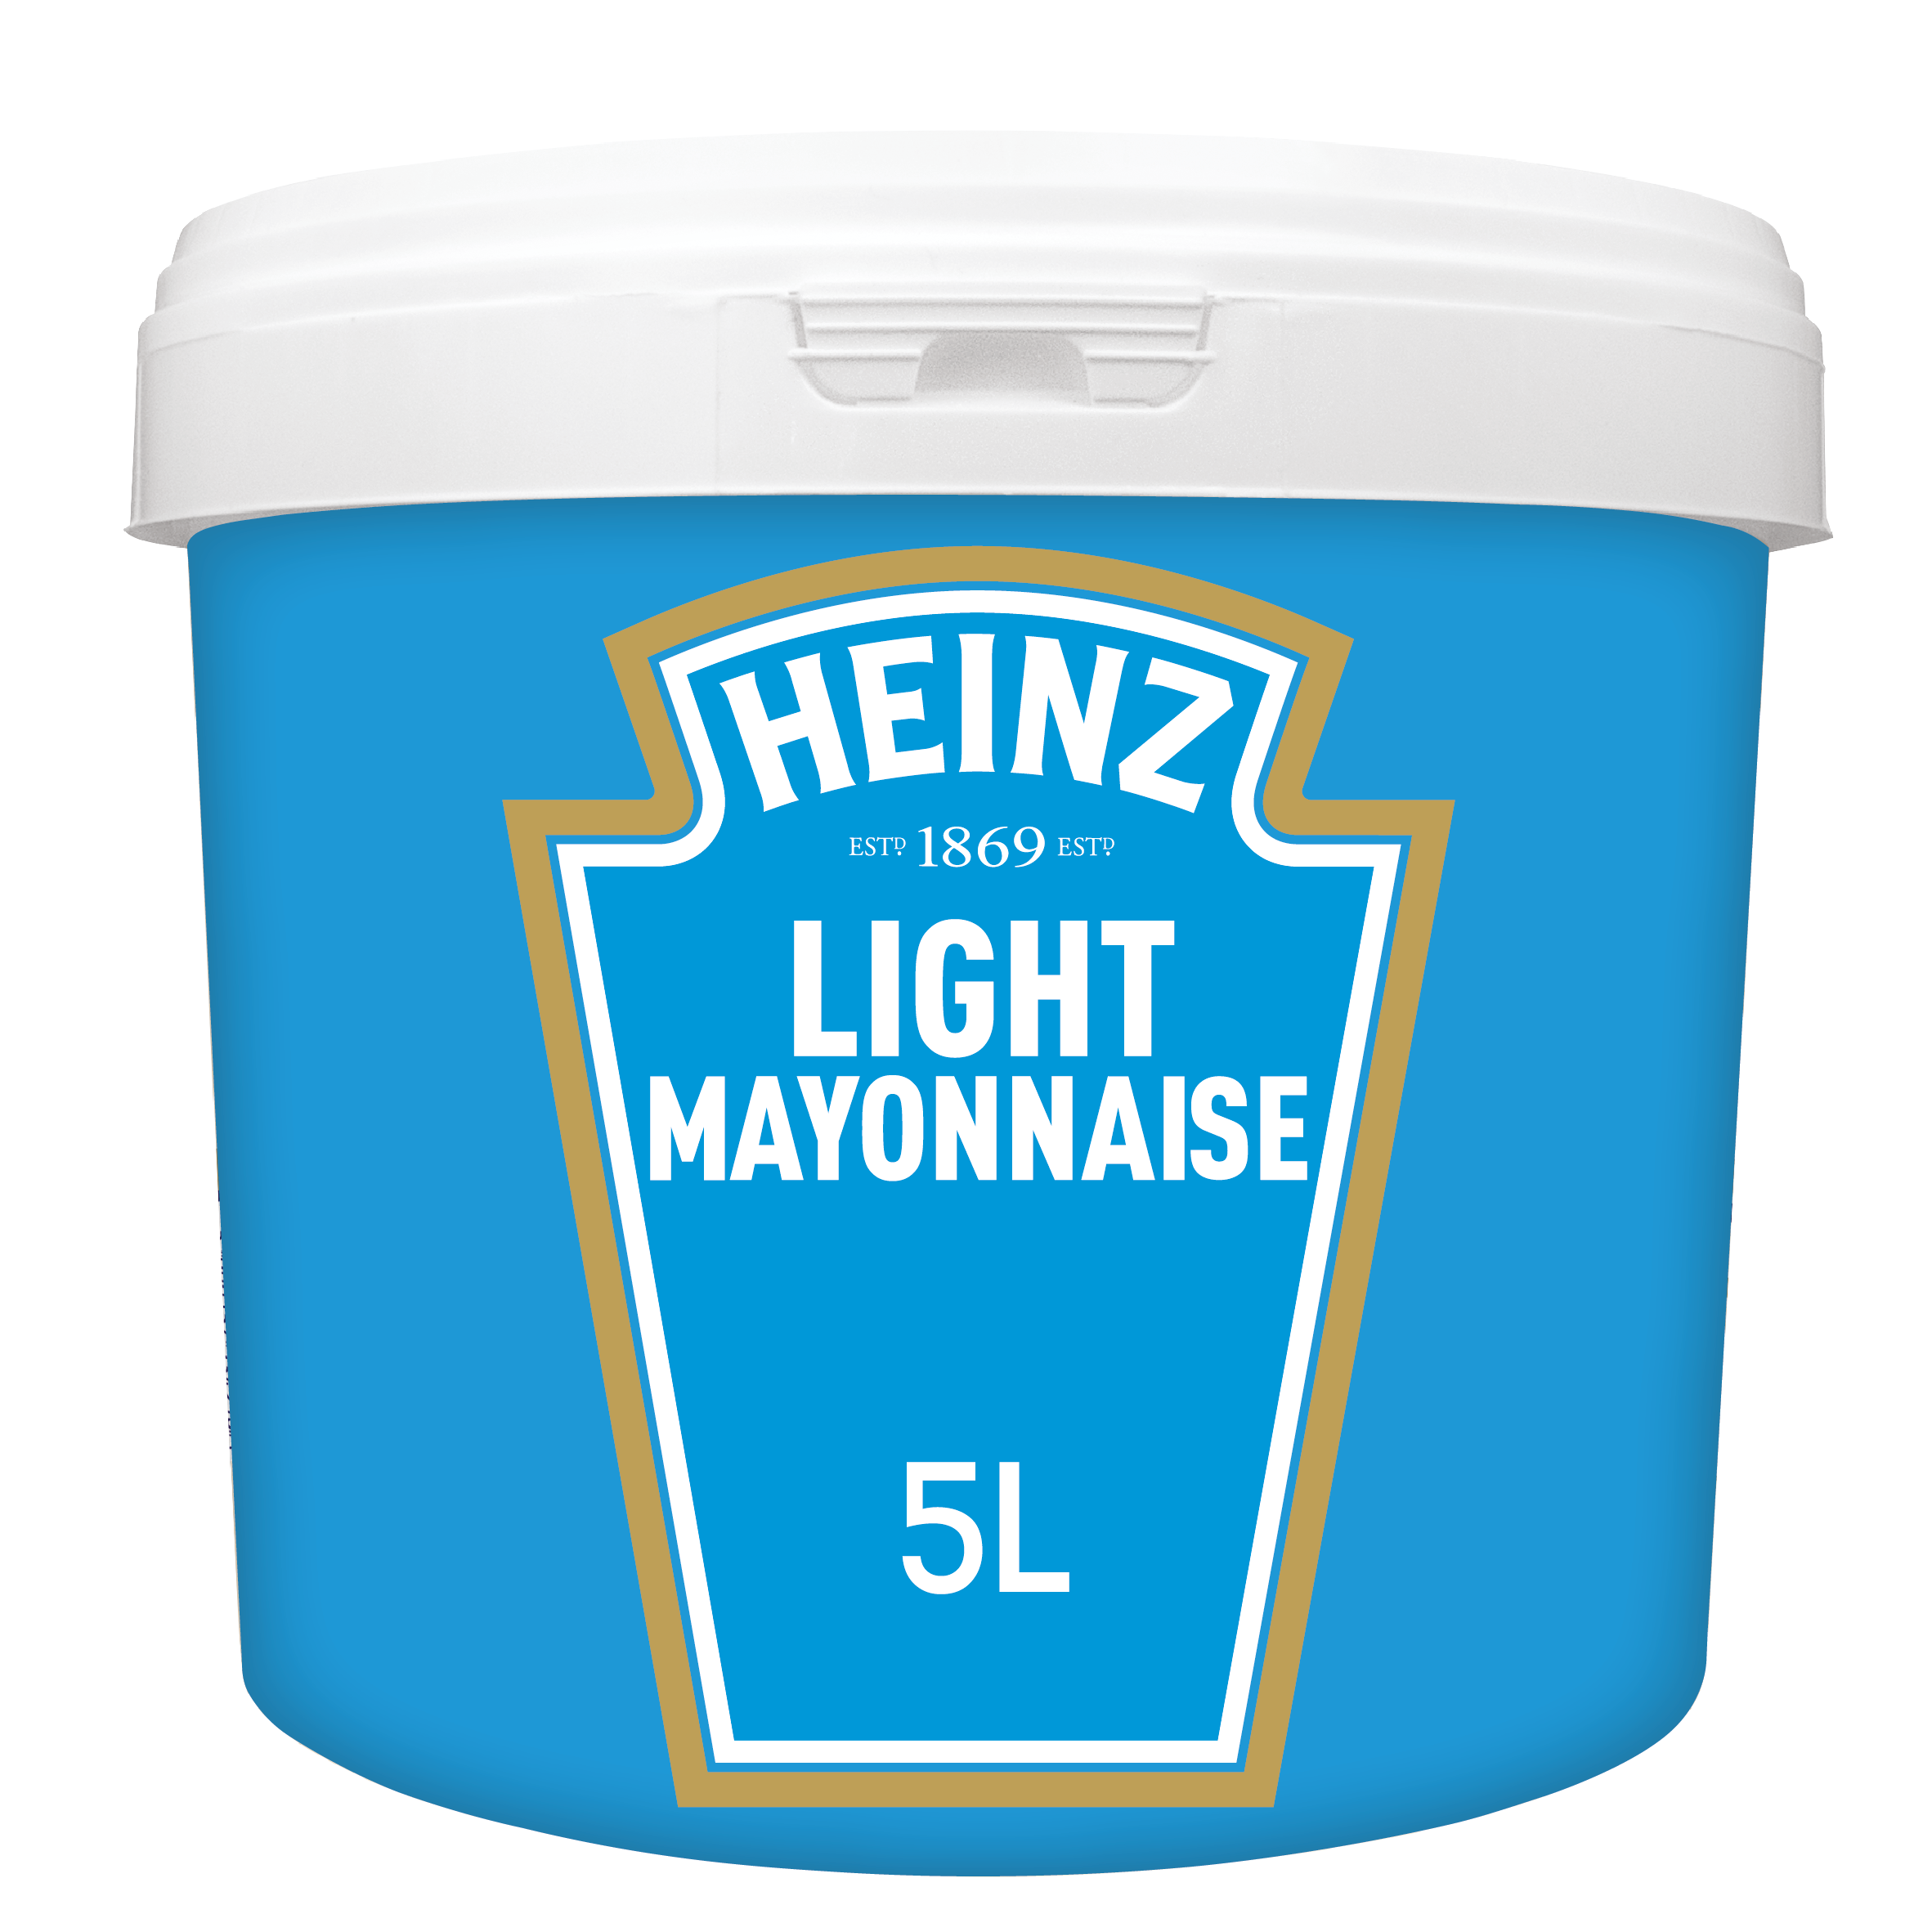 Heinz Mayonnaise Light 5L image